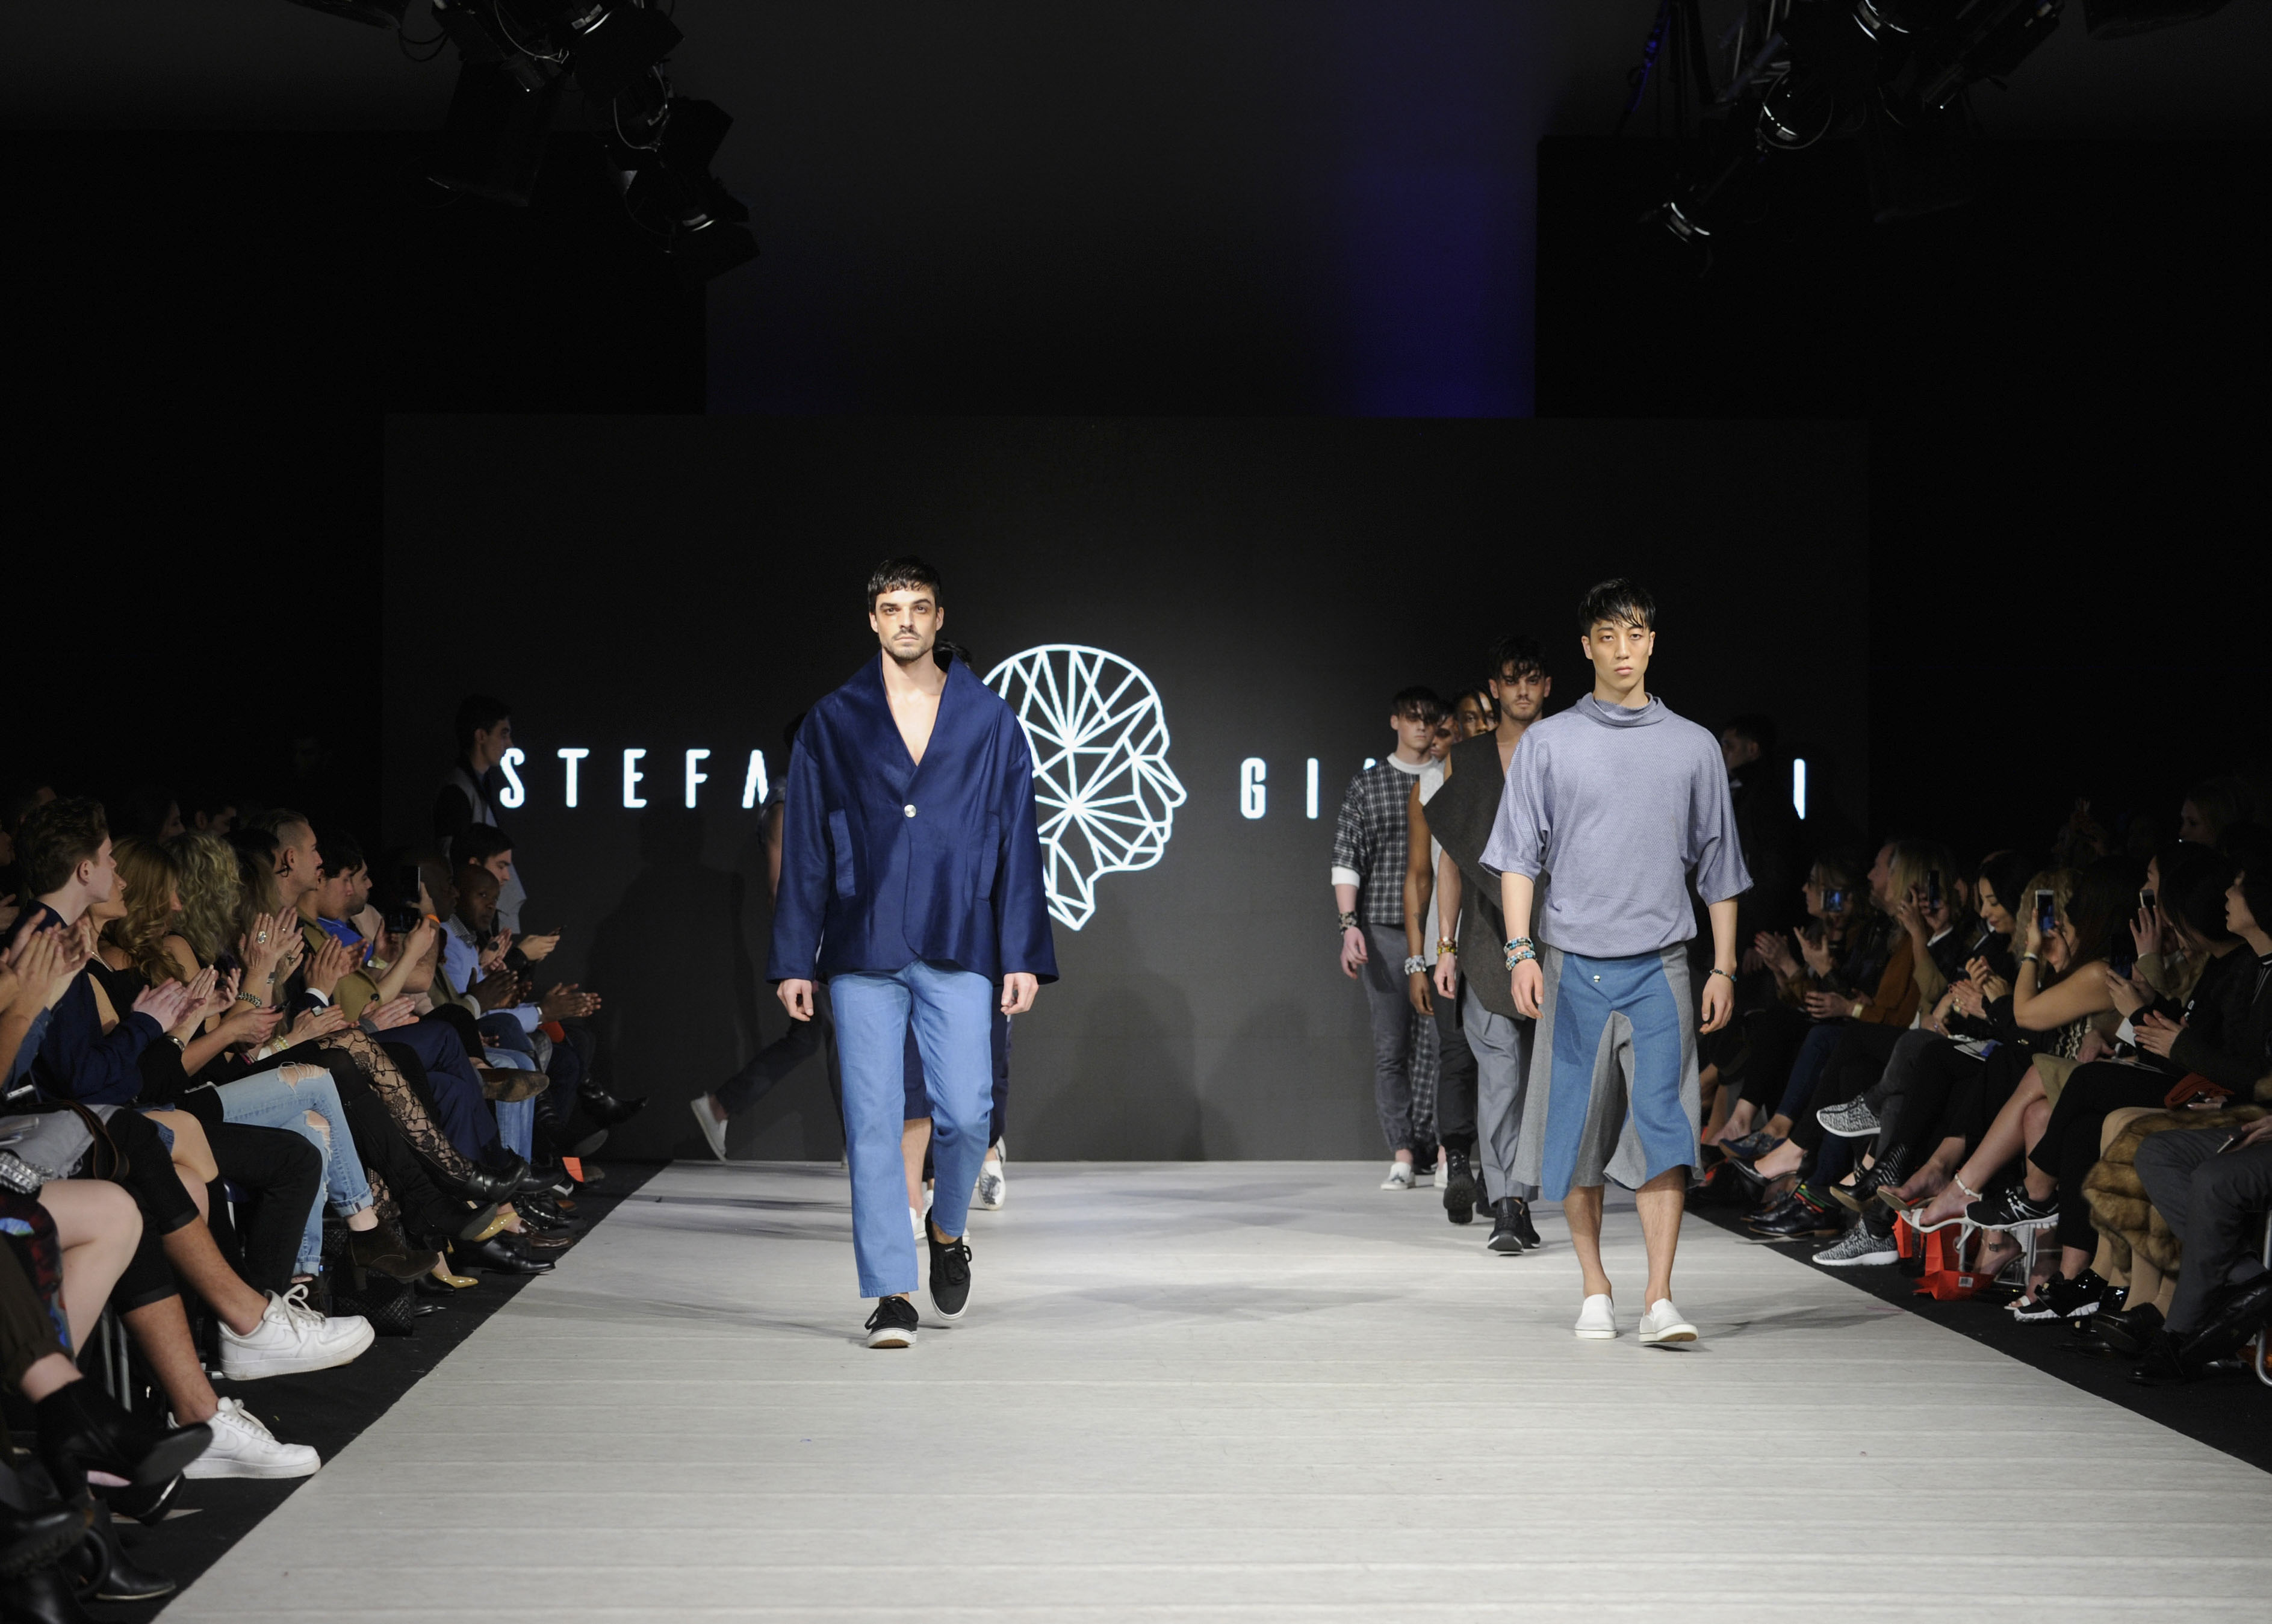 VANCOUVER, BC - MARCH 23:  Models walk the runway wearing Stefano Giammattei at Vancouver Fashion Week Fall/Winter 2017 at Chinese Cultural Centre of Greater Vancouver on March 23, 2017 in Vancouver, Canada.  (Photo by Arun Nevader/WireImage)